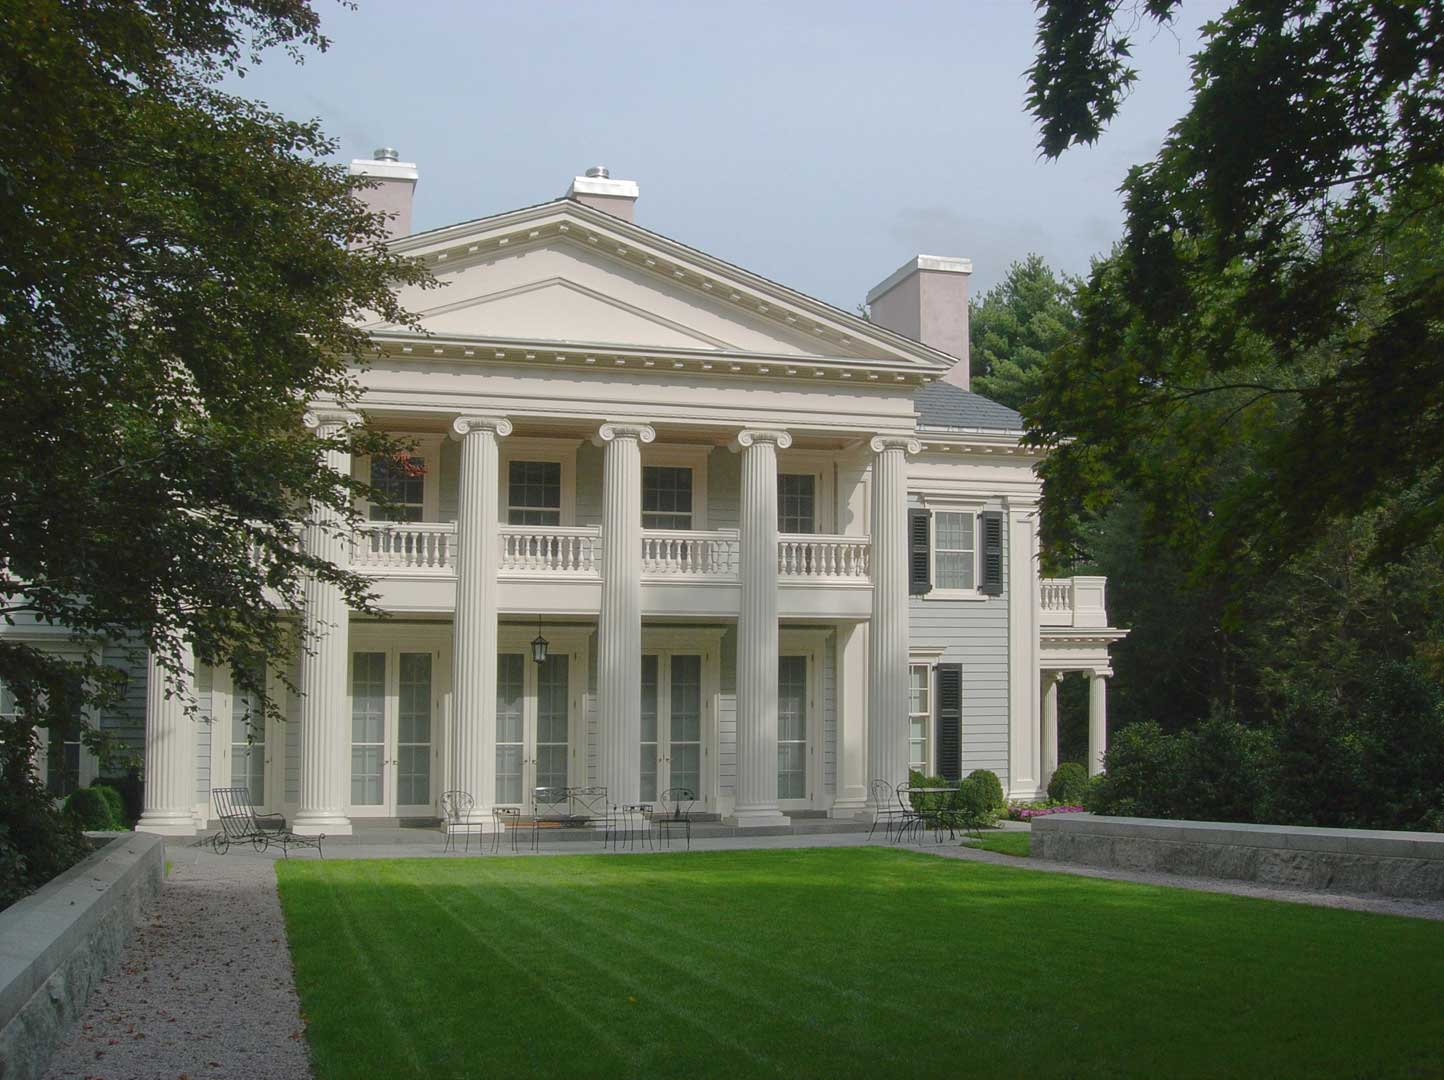 Greek Revival Exterior Architecture